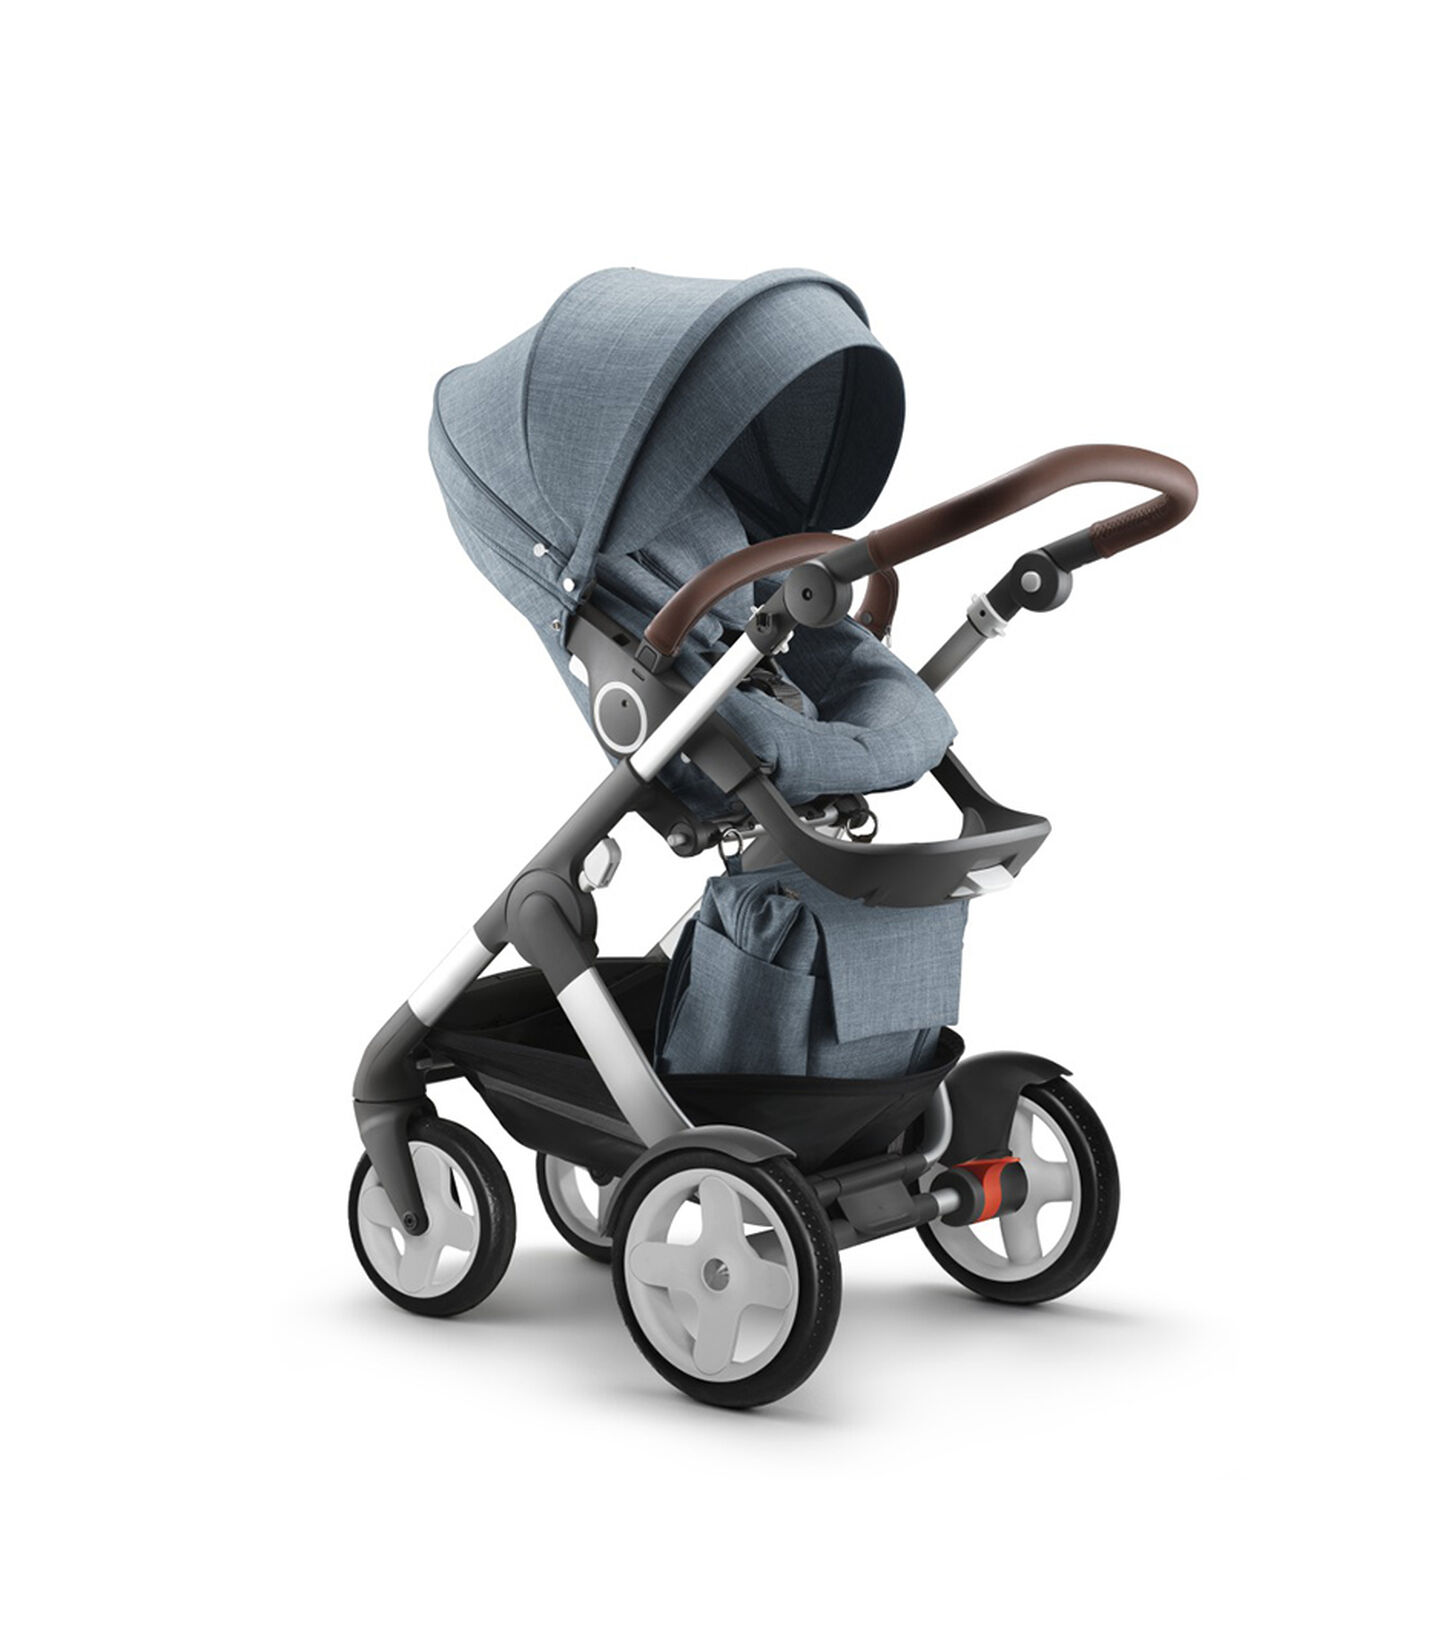 64e783424 Stokke® Trailz™ Classic with Stokke® Stroller Seat and Shopping Bag, Nordic  Blue